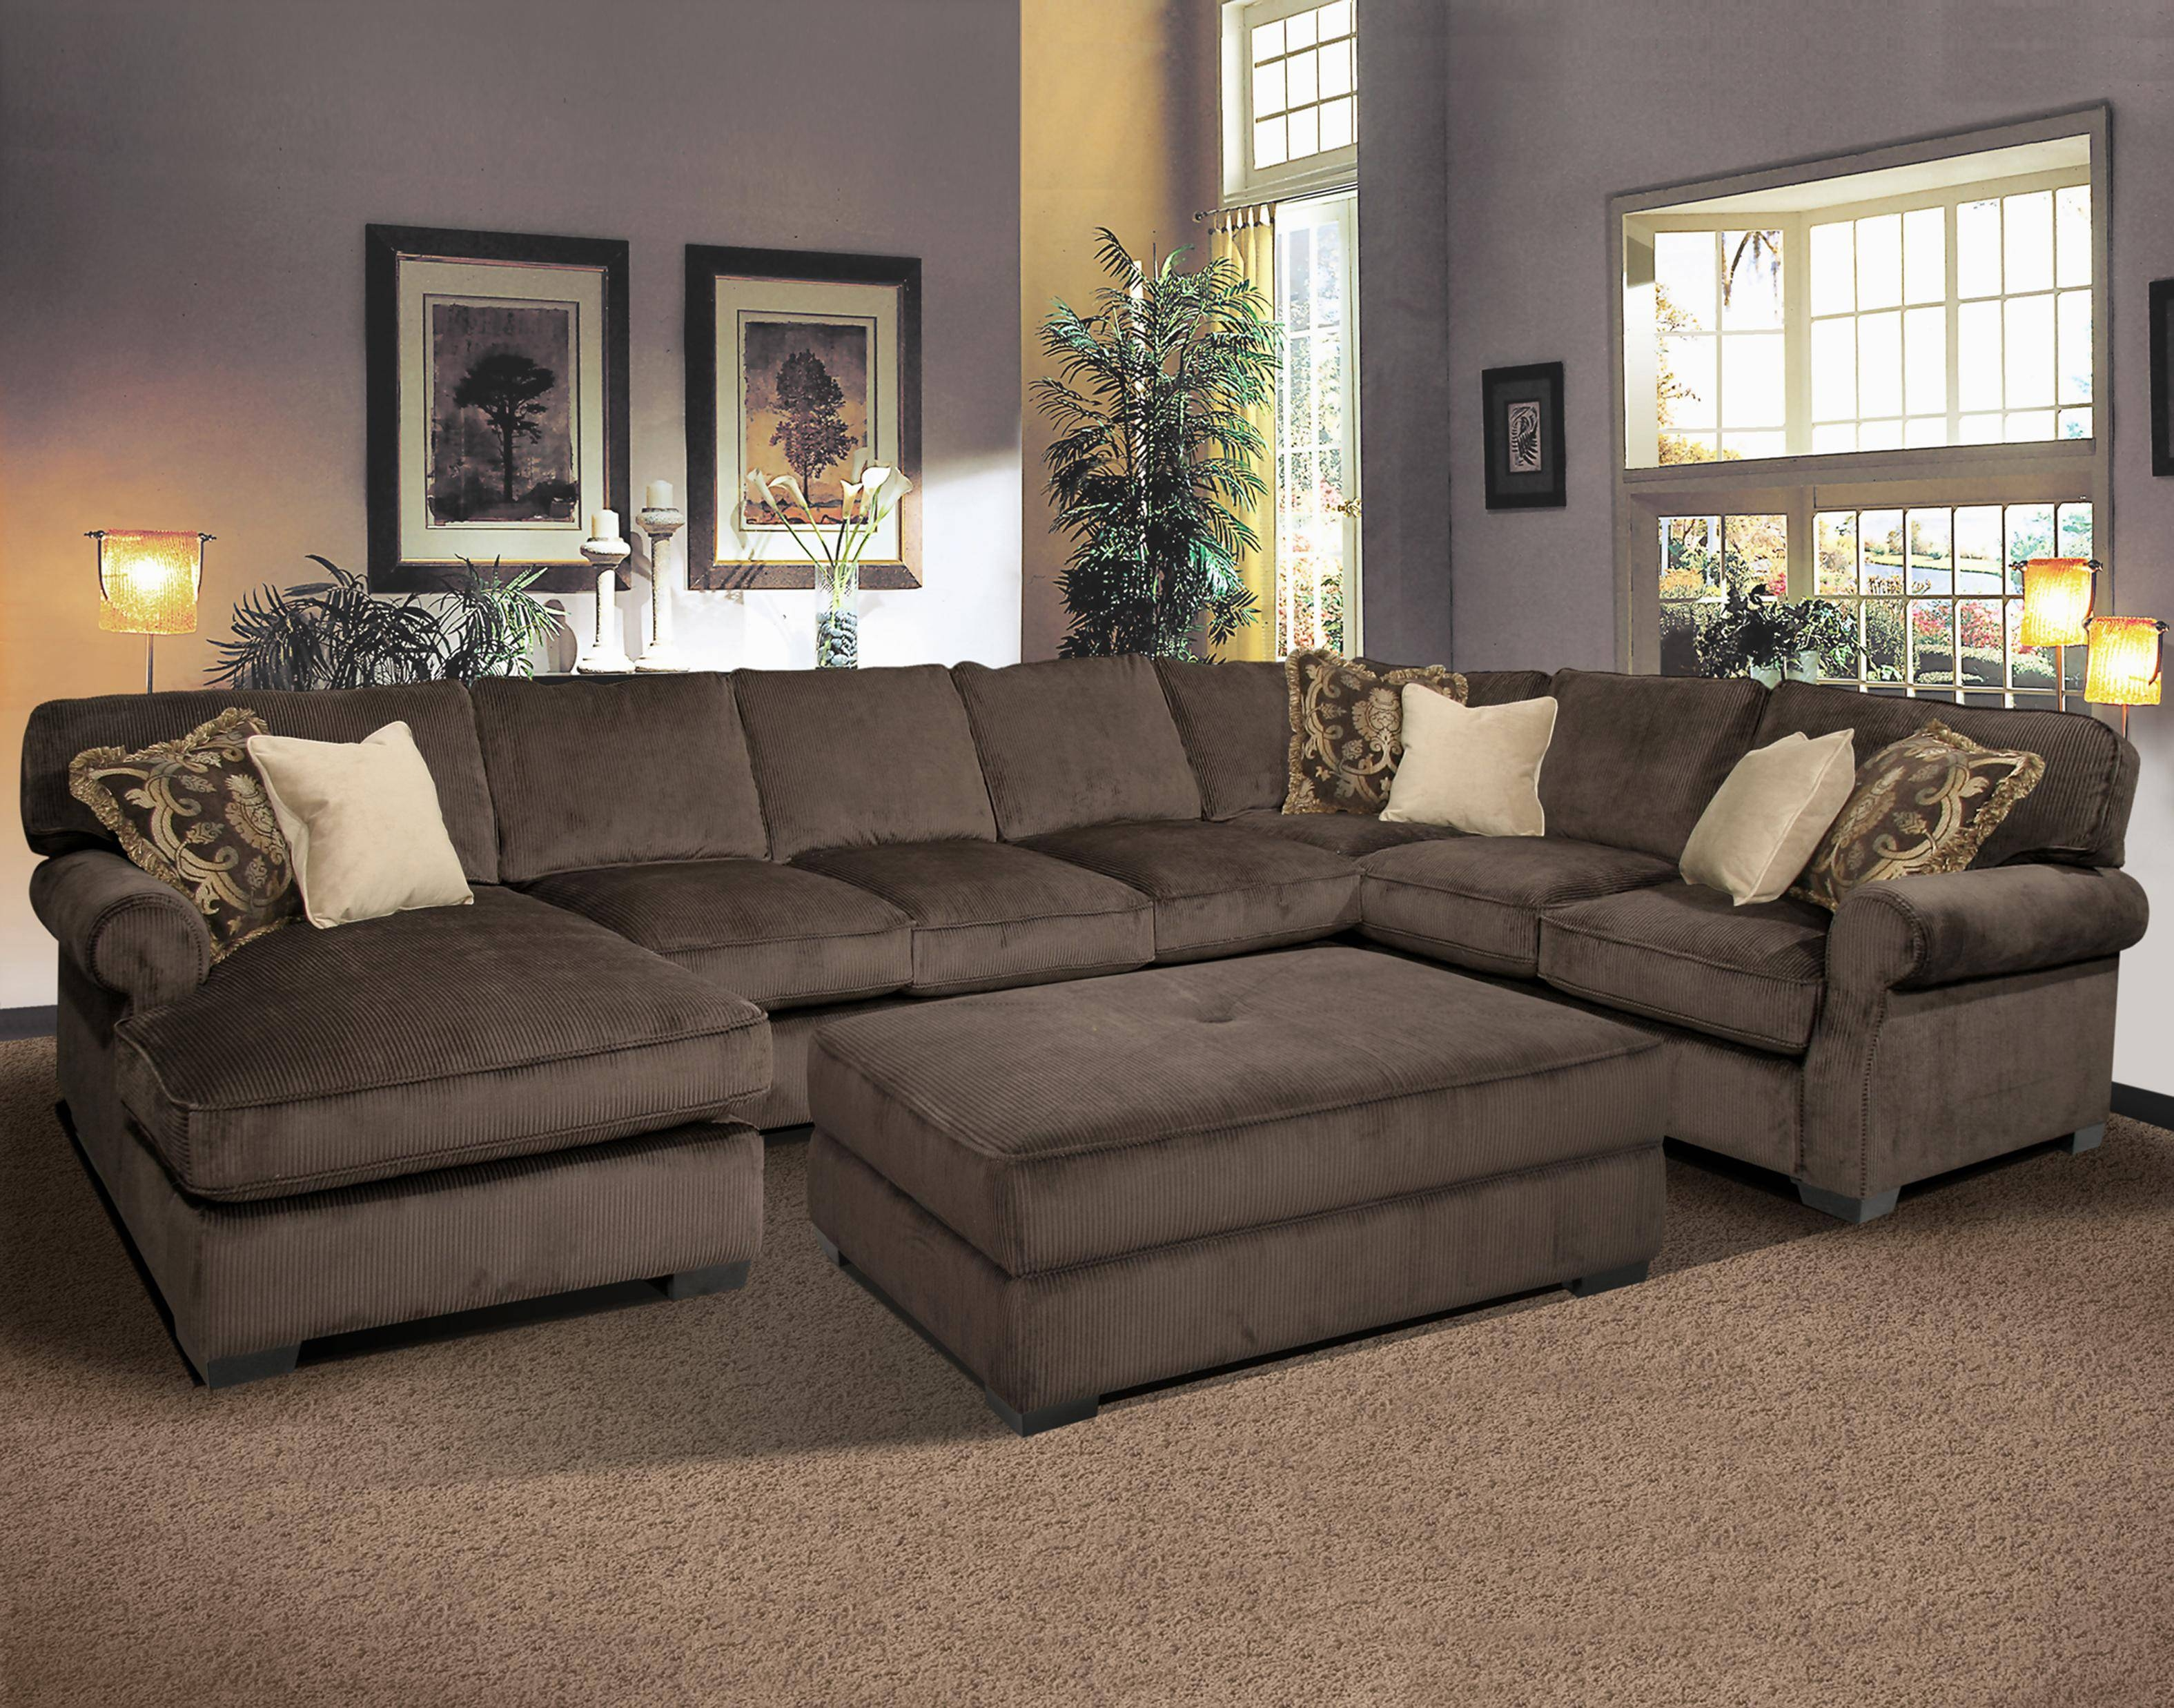 Brando Sofa With Chaise Smoke. Oversized Couch Couch And Oversized throughout Deep Cushioned Sofas (Image 1 of 30)